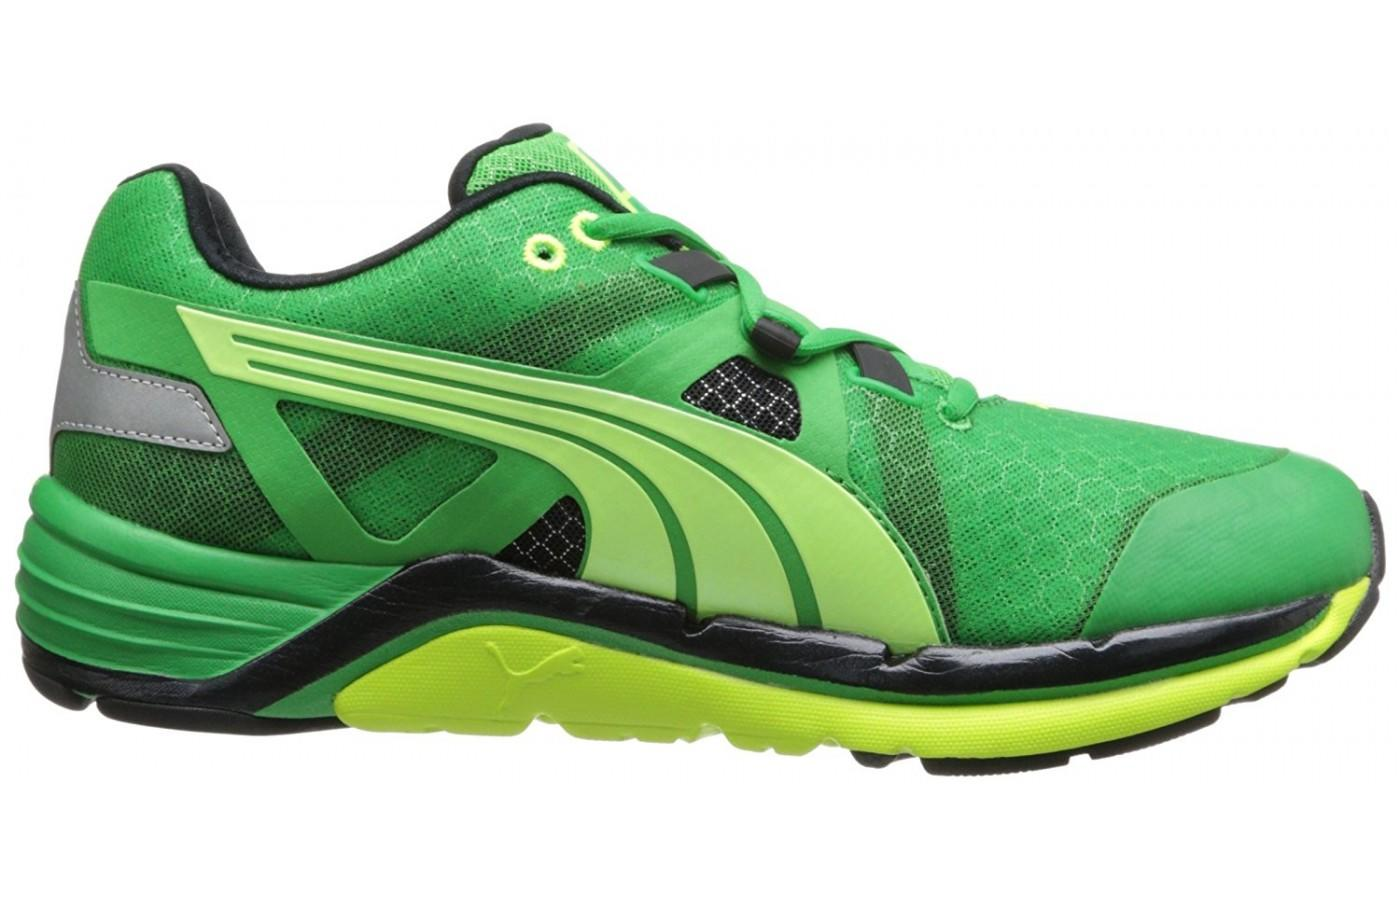 Side profile of the Puma Faas 1000